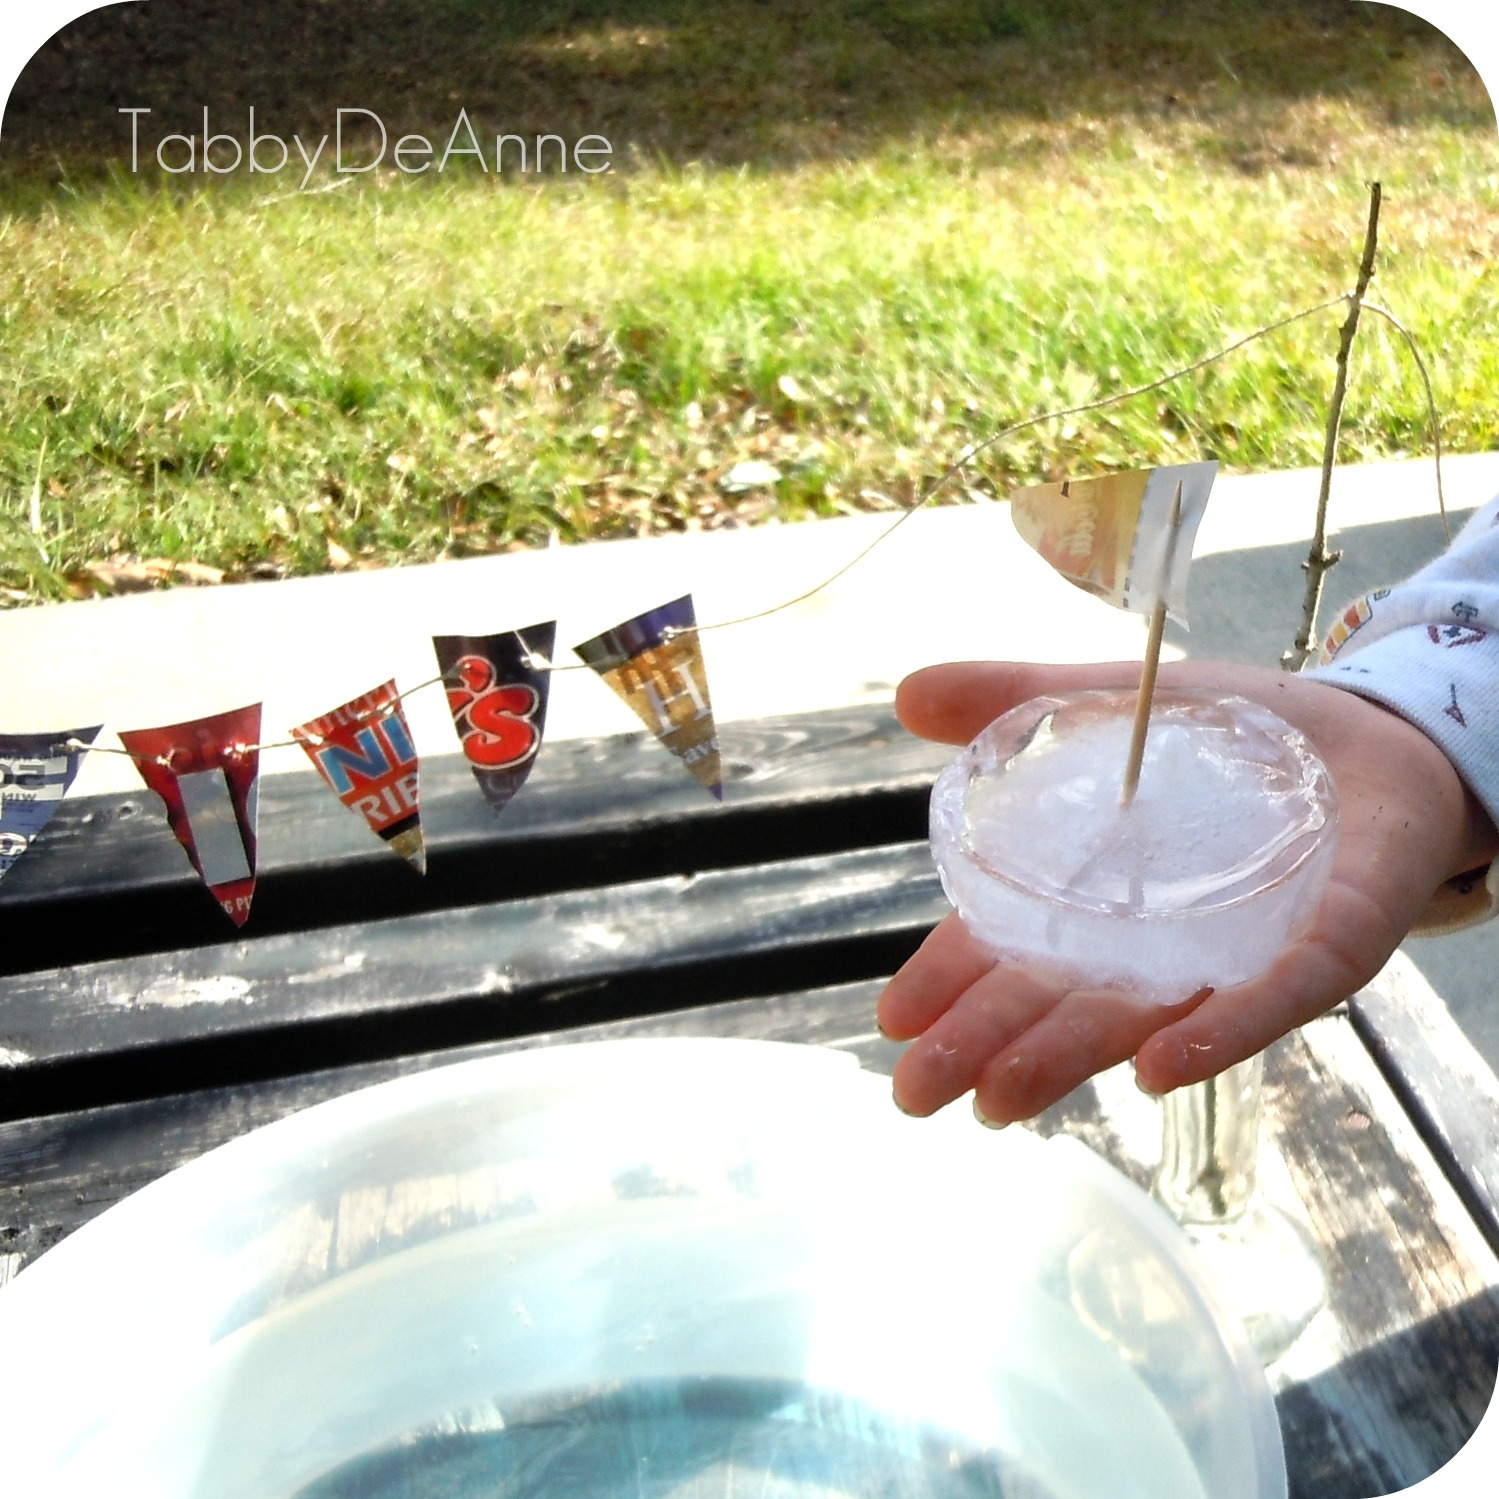 Kids Ice Boat made out of Ice!! Eco-Friendly & FREE! Fun Kids Toy!